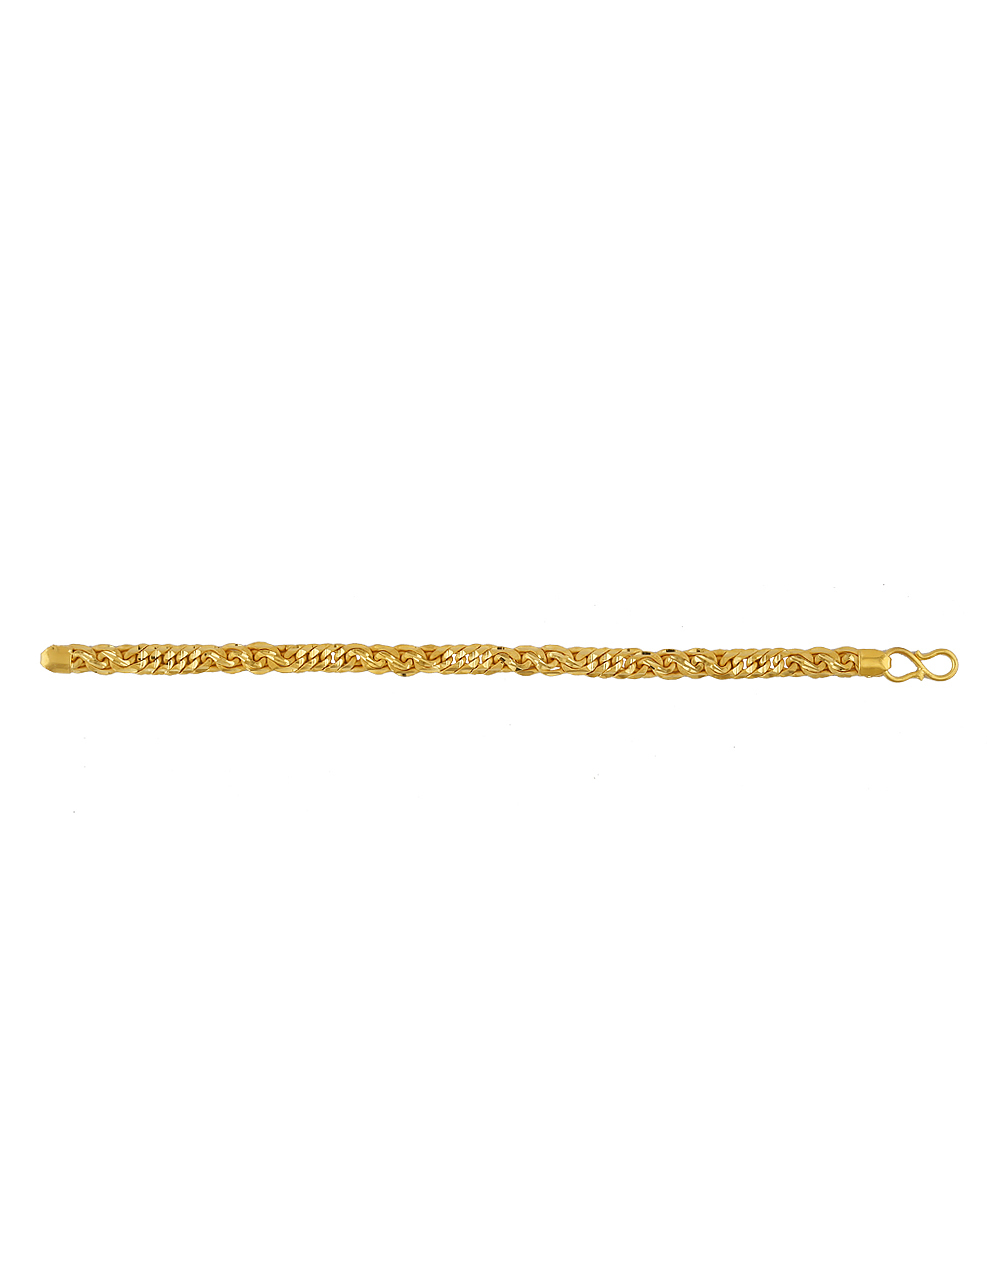 Fancy Gold Finish Breacelets For Guys